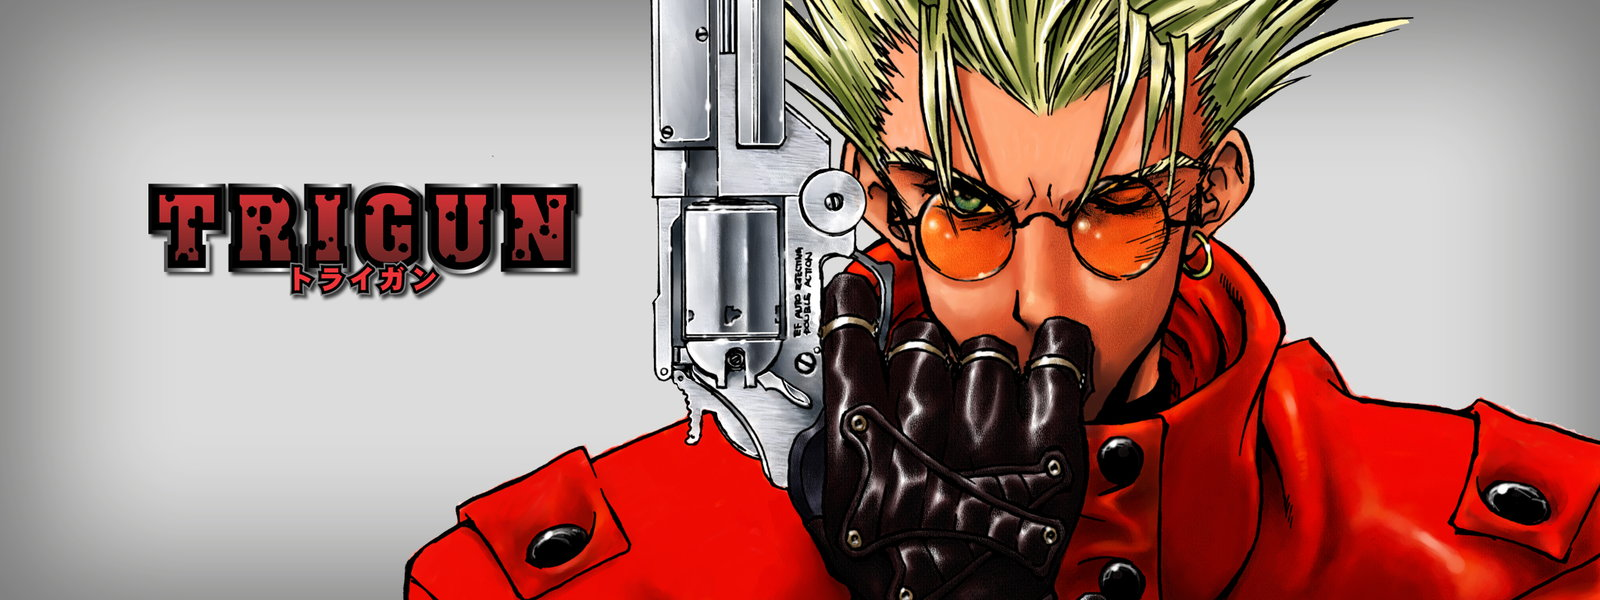 Anime Worth Watching Trigun